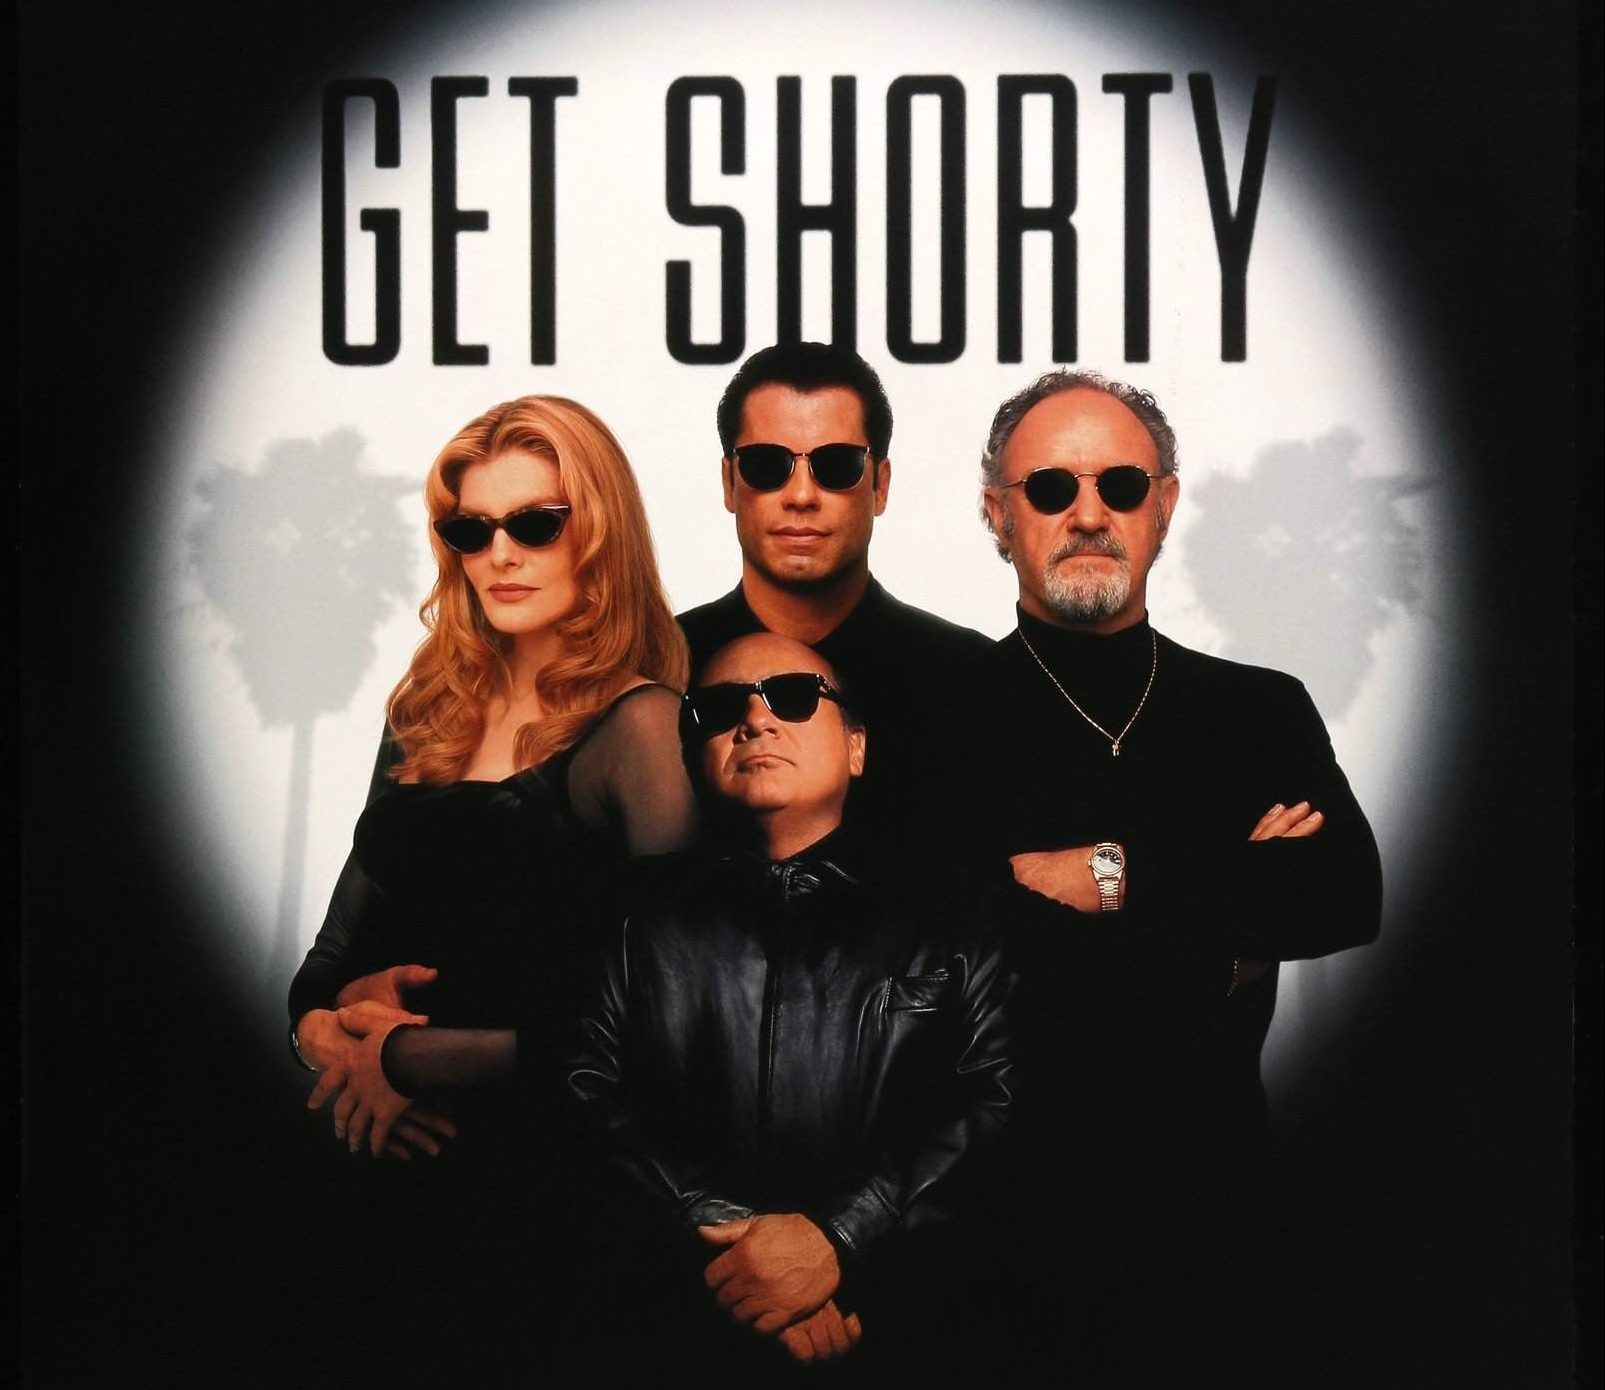 Get Shorty 1995 original film art 08754843 6116 4a49 bd57 7c674a05ffe0 5000x e1614857479520 30 Things You Probably Didn't Know About Jackie Brown